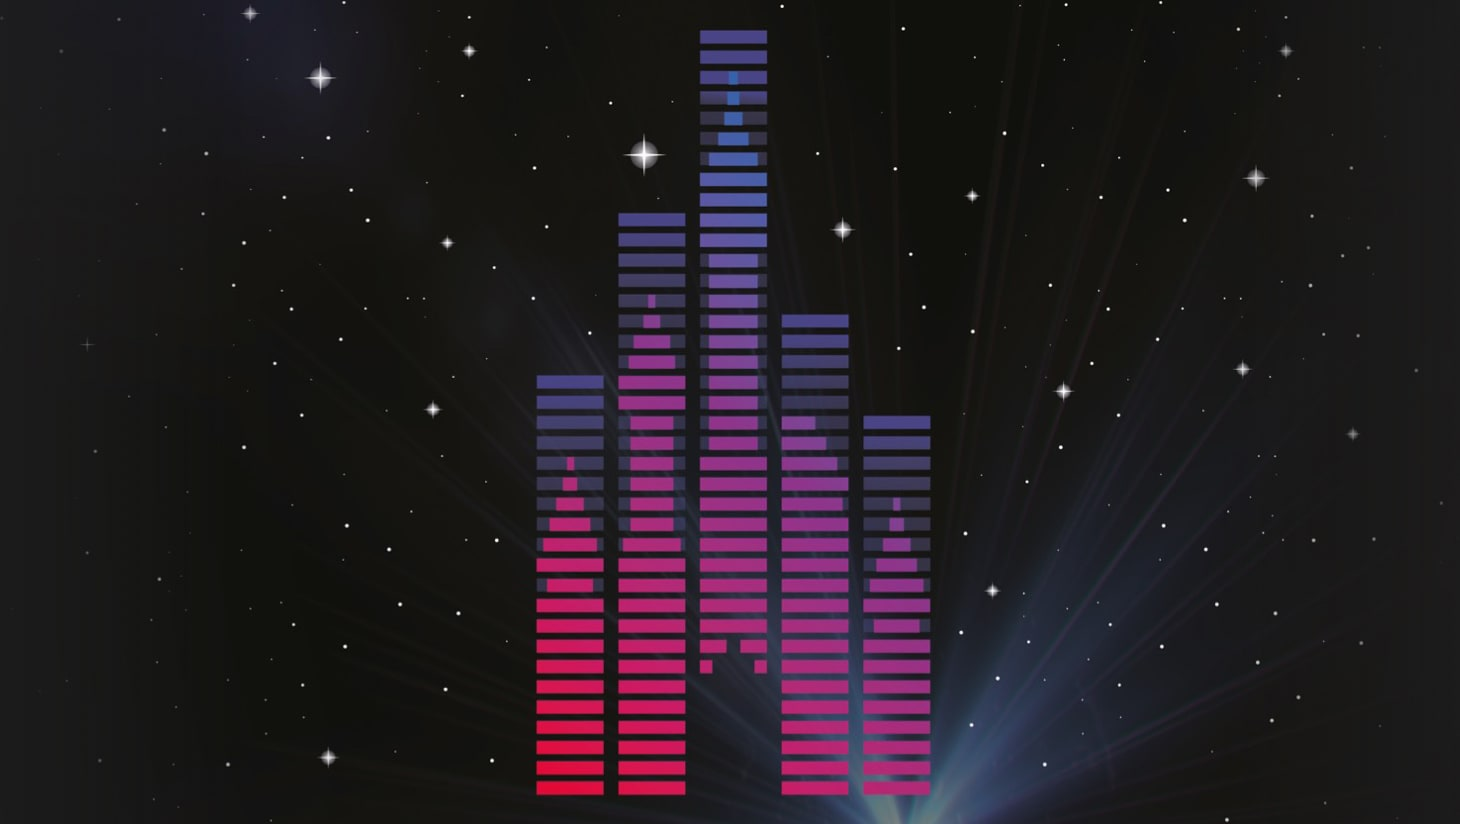 A silhouette of Cinderella's castle projected onto music levels with a starry night sky in the background